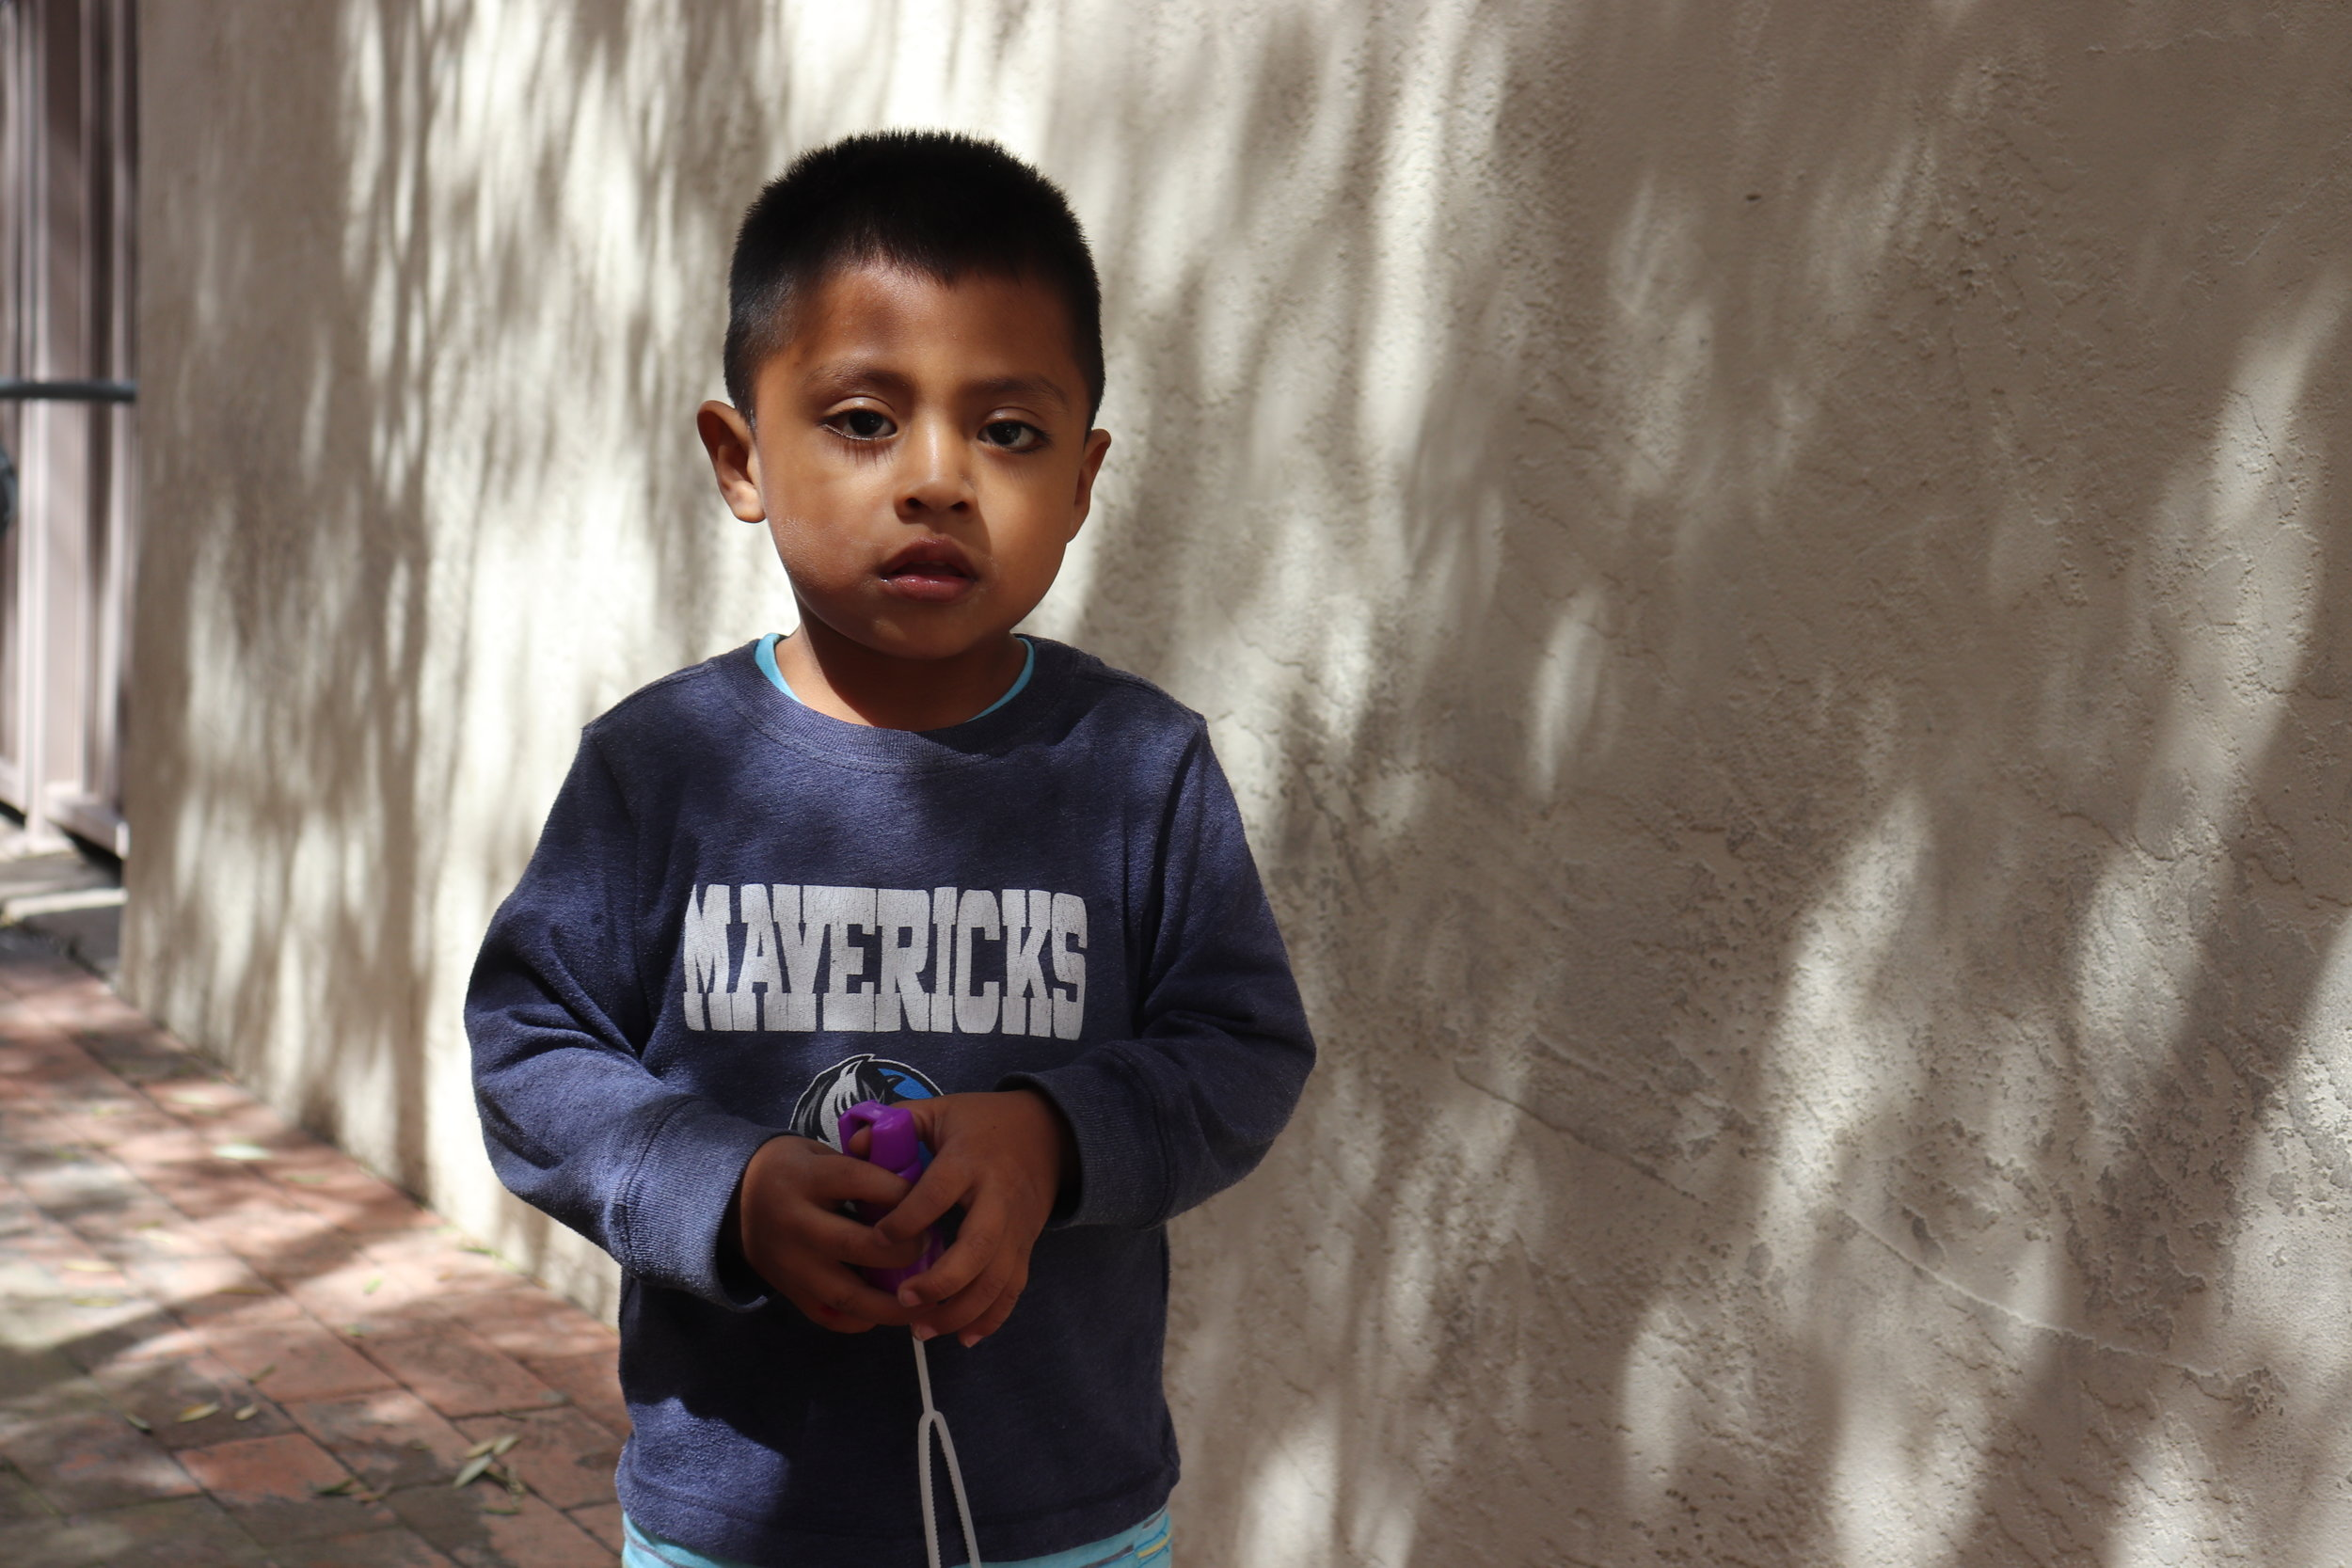 A young boy plays with donated bubbles in the courtyard of The Inn Project. Volunteer opportunities are provided in almost every state, find one near you at welcomingamerica.org